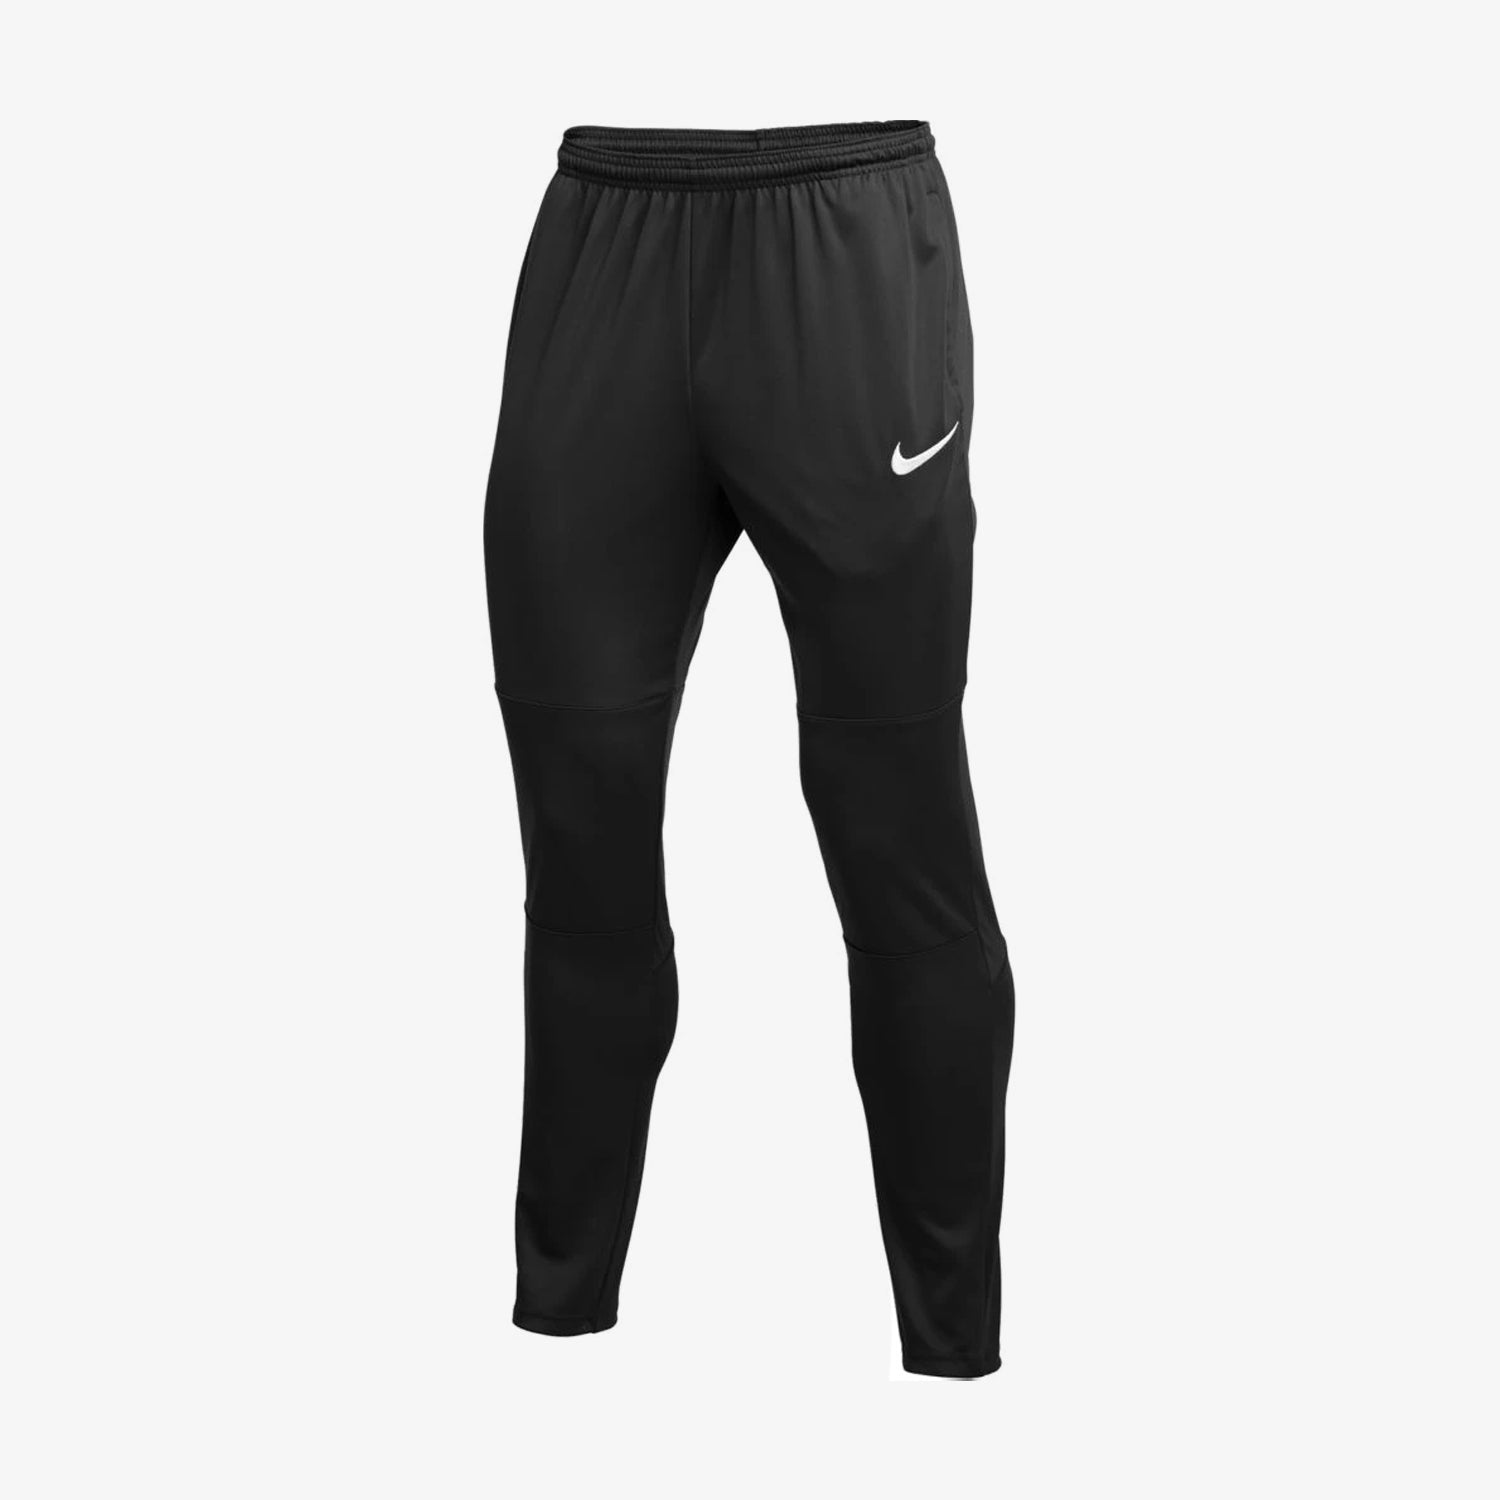 Youth Park 20 Knit Training Soccer Pant Black